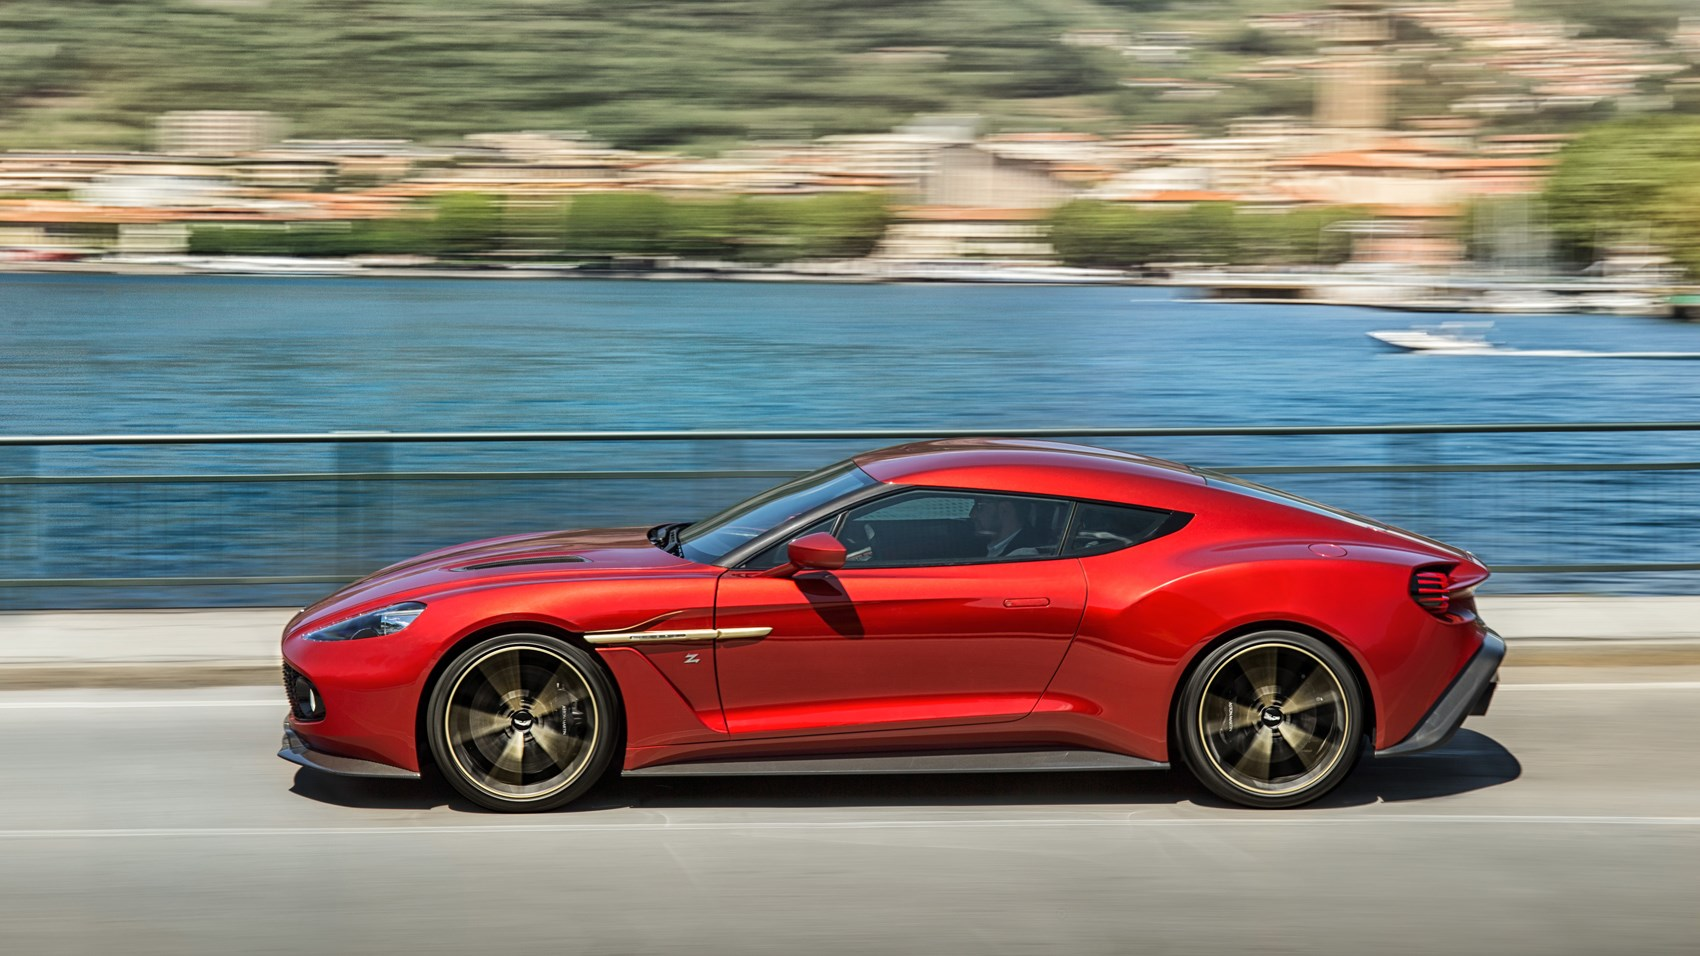 http://images.car.bauercdn.com/pagefiles/31048/vanquish-zagato_02.jpg